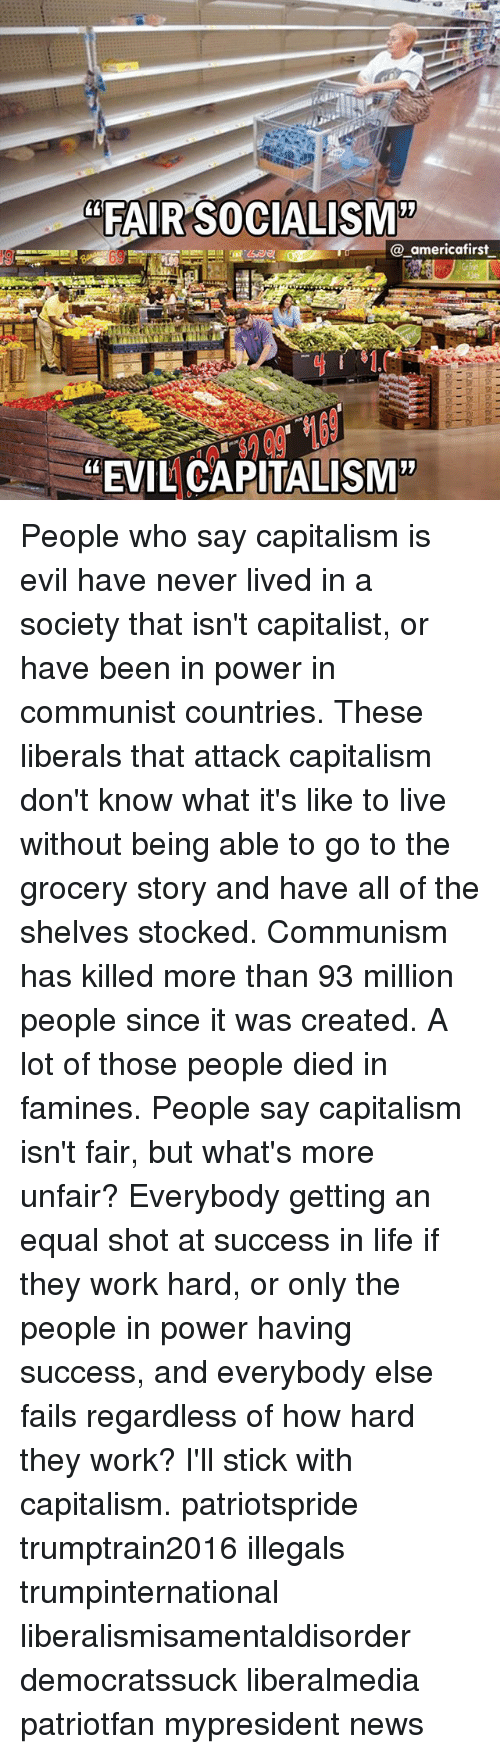 """Equalism: """"FAIR SOCIALISM'""""  @_americafirst  """"EVIL CAPITALISM"""" People who say capitalism is evil have never lived in a society that isn't capitalist, or have been in power in communist countries. These liberals that attack capitalism don't know what it's like to live without being able to go to the grocery story and have all of the shelves stocked. Communism has killed more than 93 million people since it was created. A lot of those people died in famines. People say capitalism isn't fair, but what's more unfair? Everybody getting an equal shot at success in life if they work hard, or only the people in power having success, and everybody else fails regardless of how hard they work? I'll stick with capitalism. patriotspride trumptrain2016 illegals trumpinternational liberalismisamentaldisorder democratssuck liberalmedia patriotfan mypresident news"""